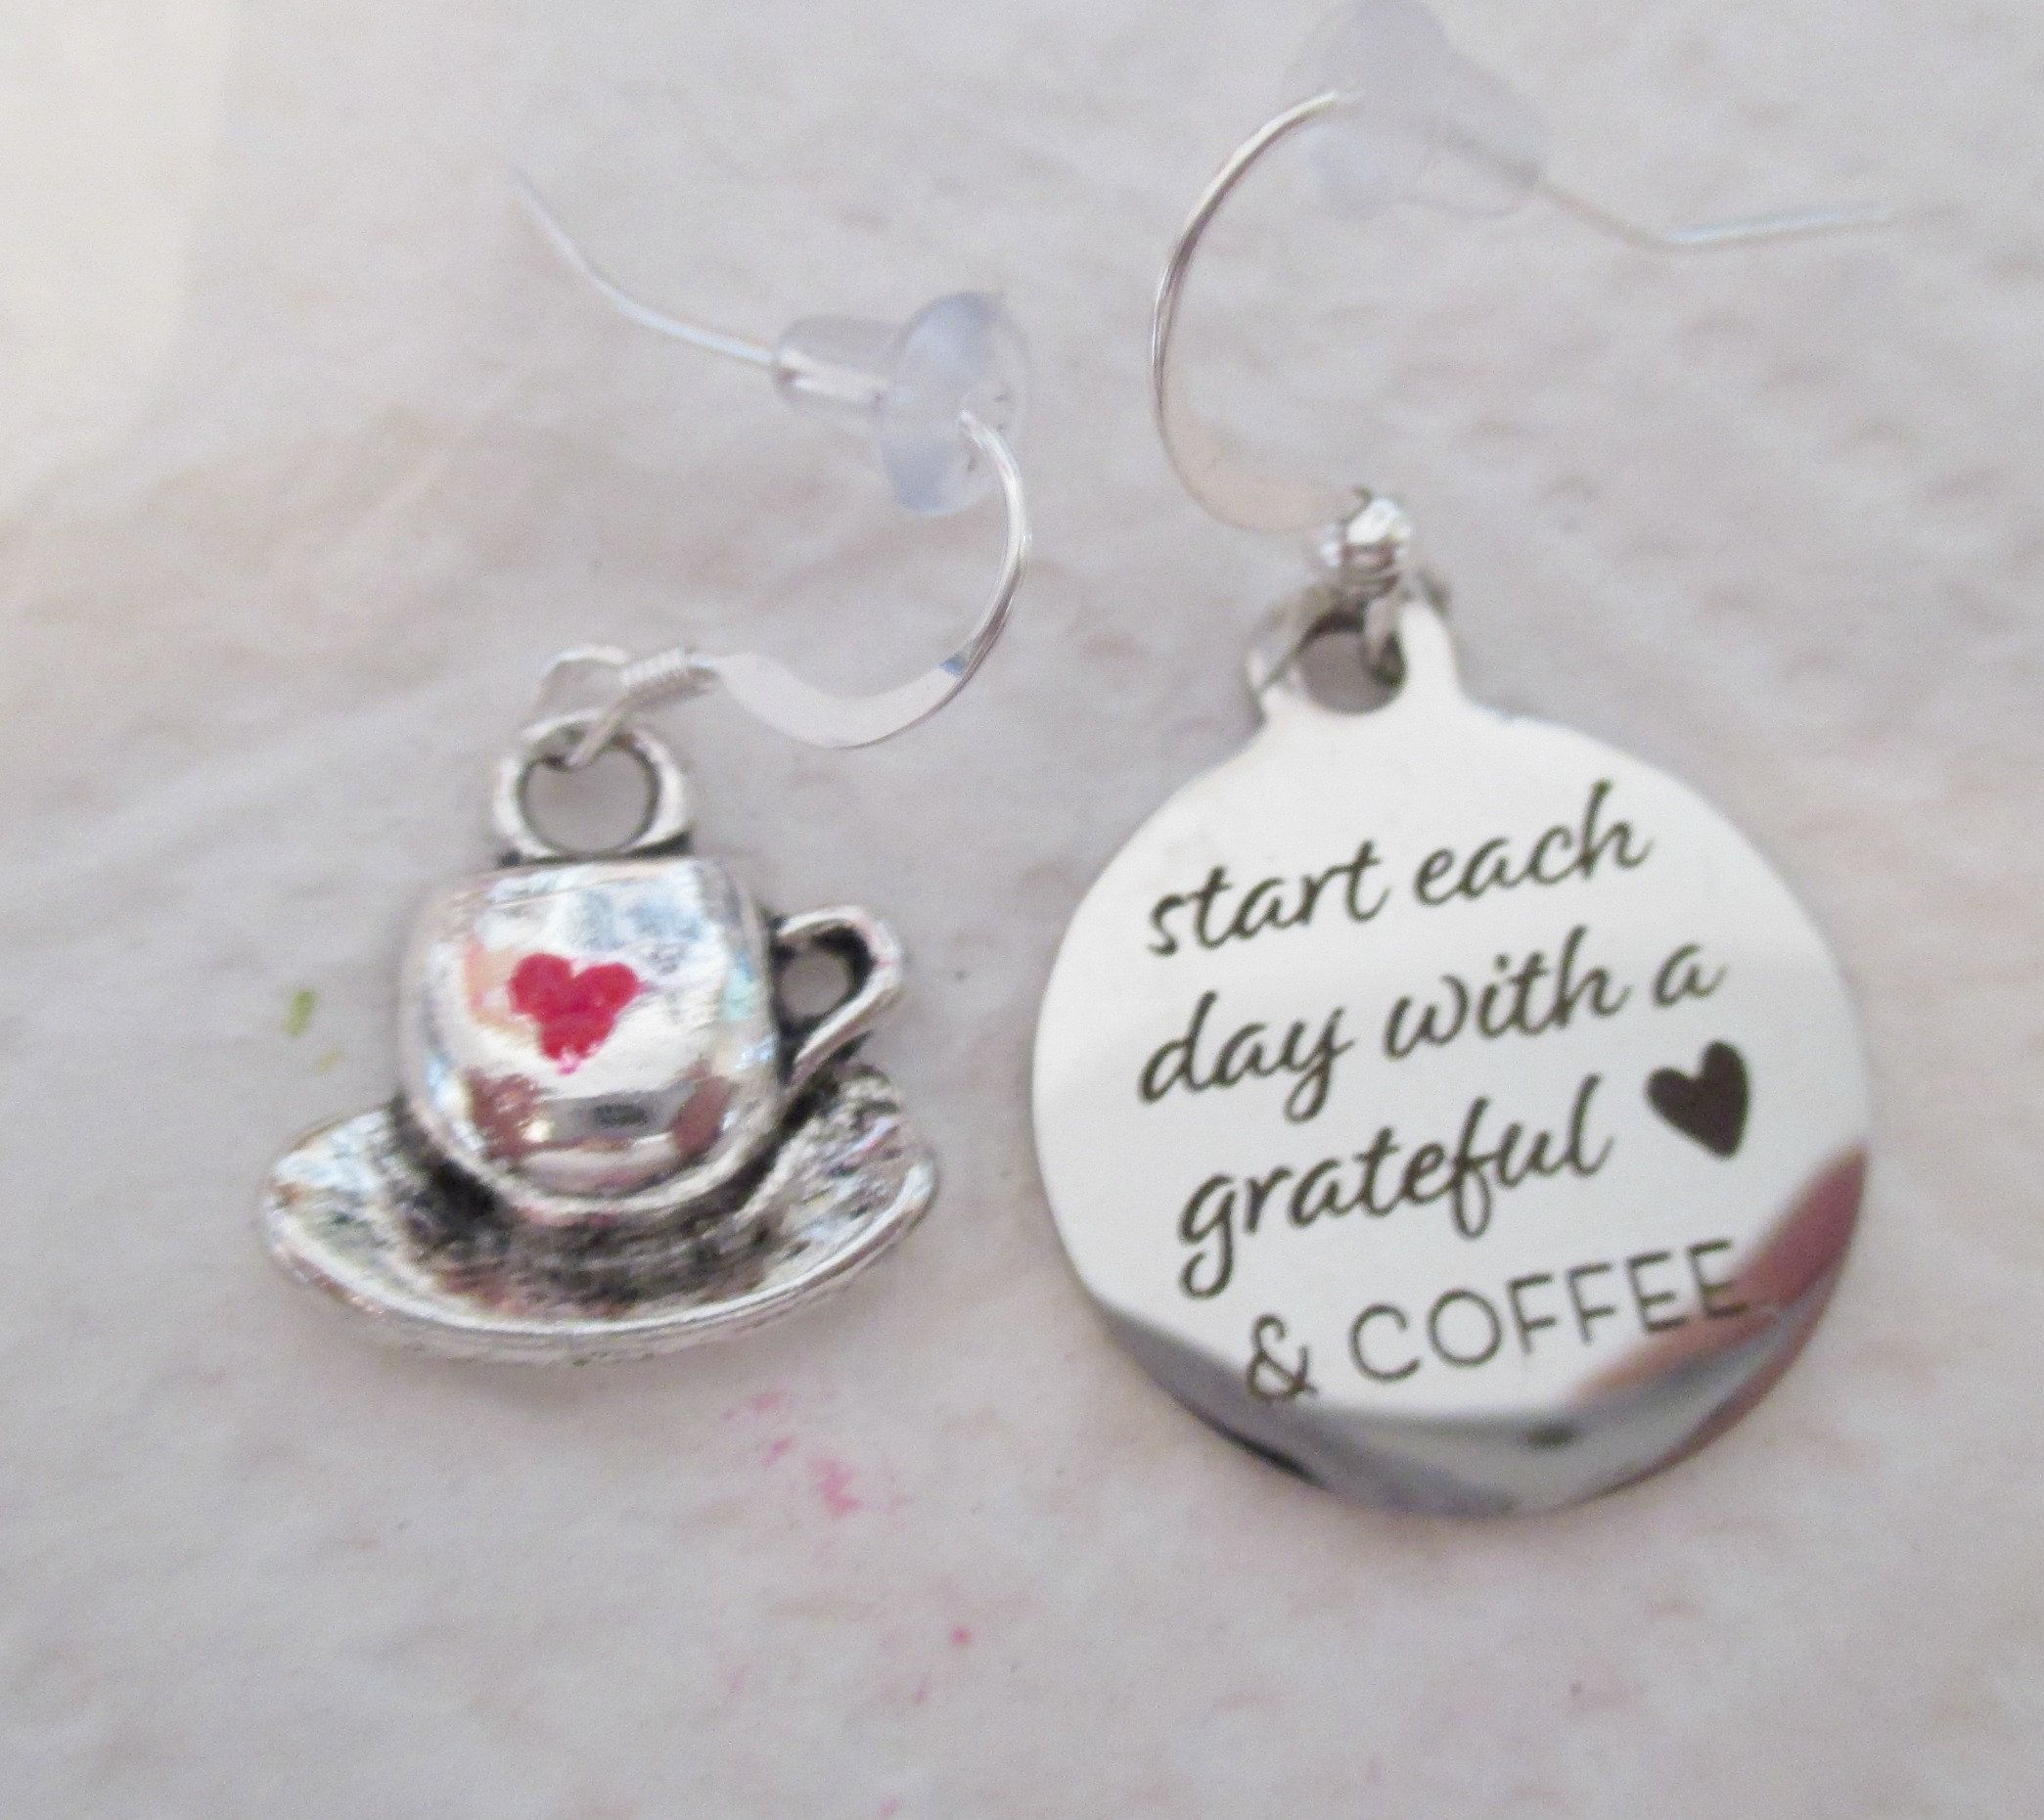 Grateful Heart and Coffee Mismatched Silver Earrings one pair